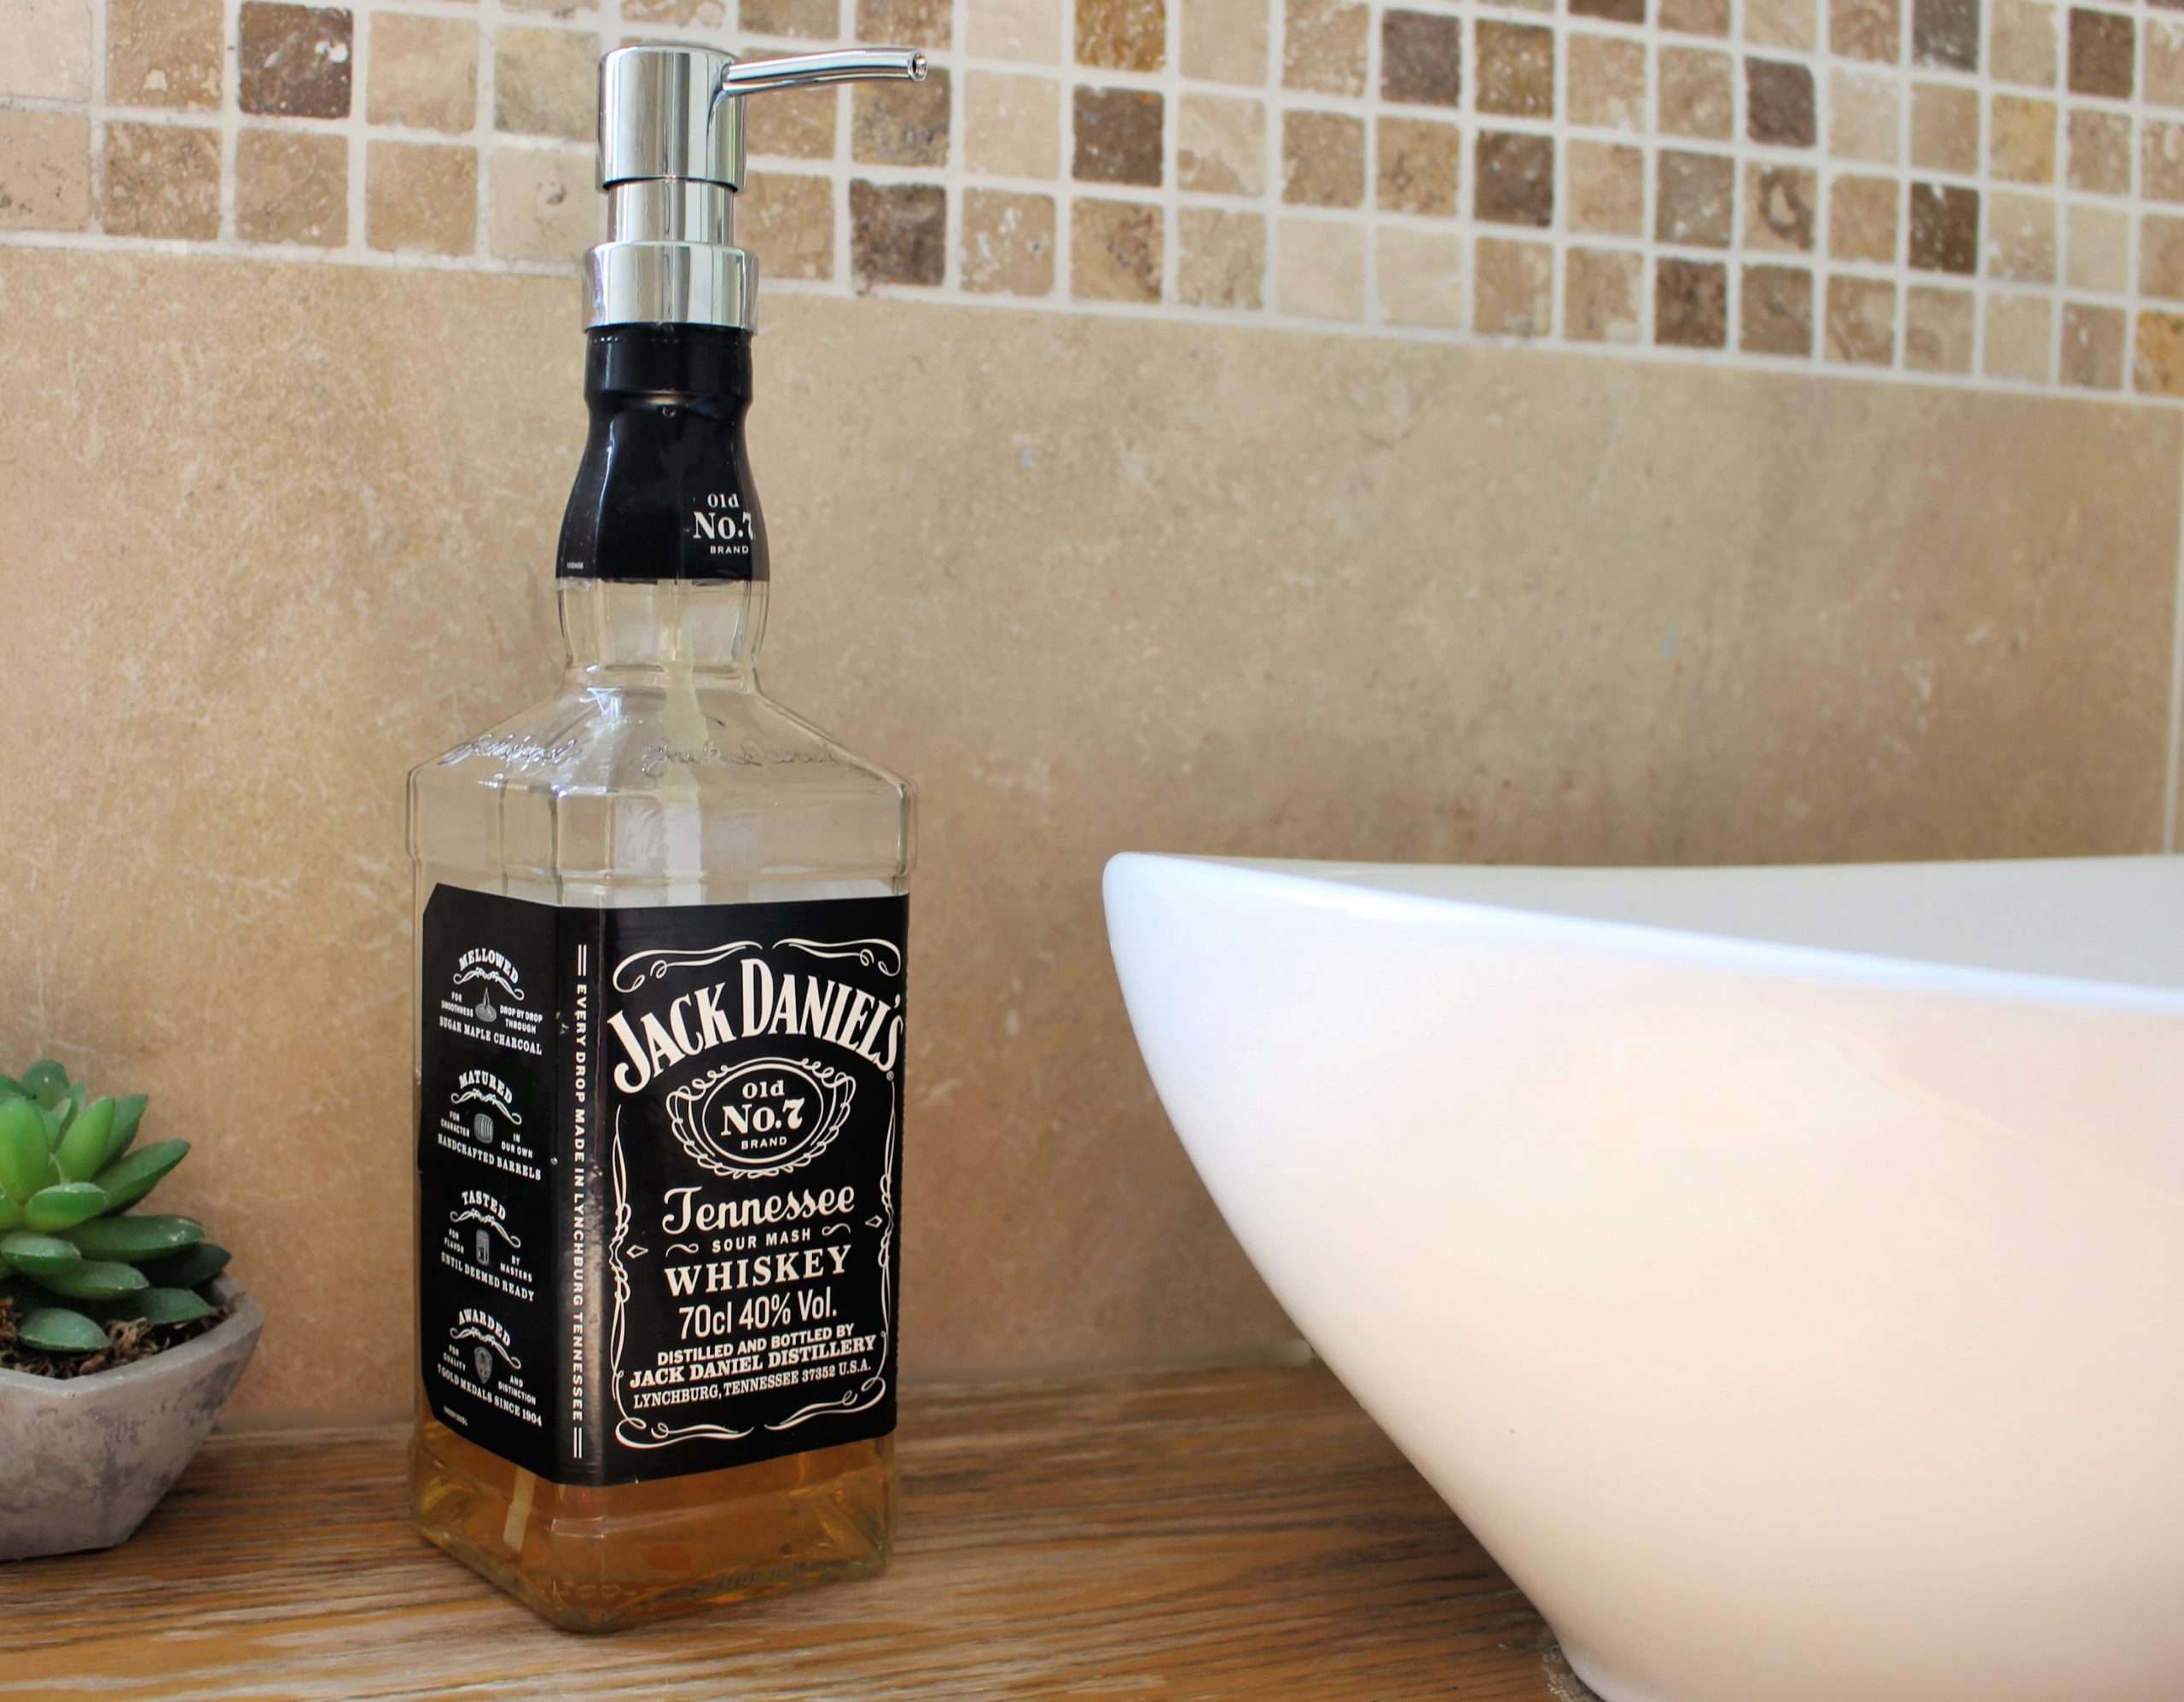 Re-purpose an old bottle by making a soap dispenser!